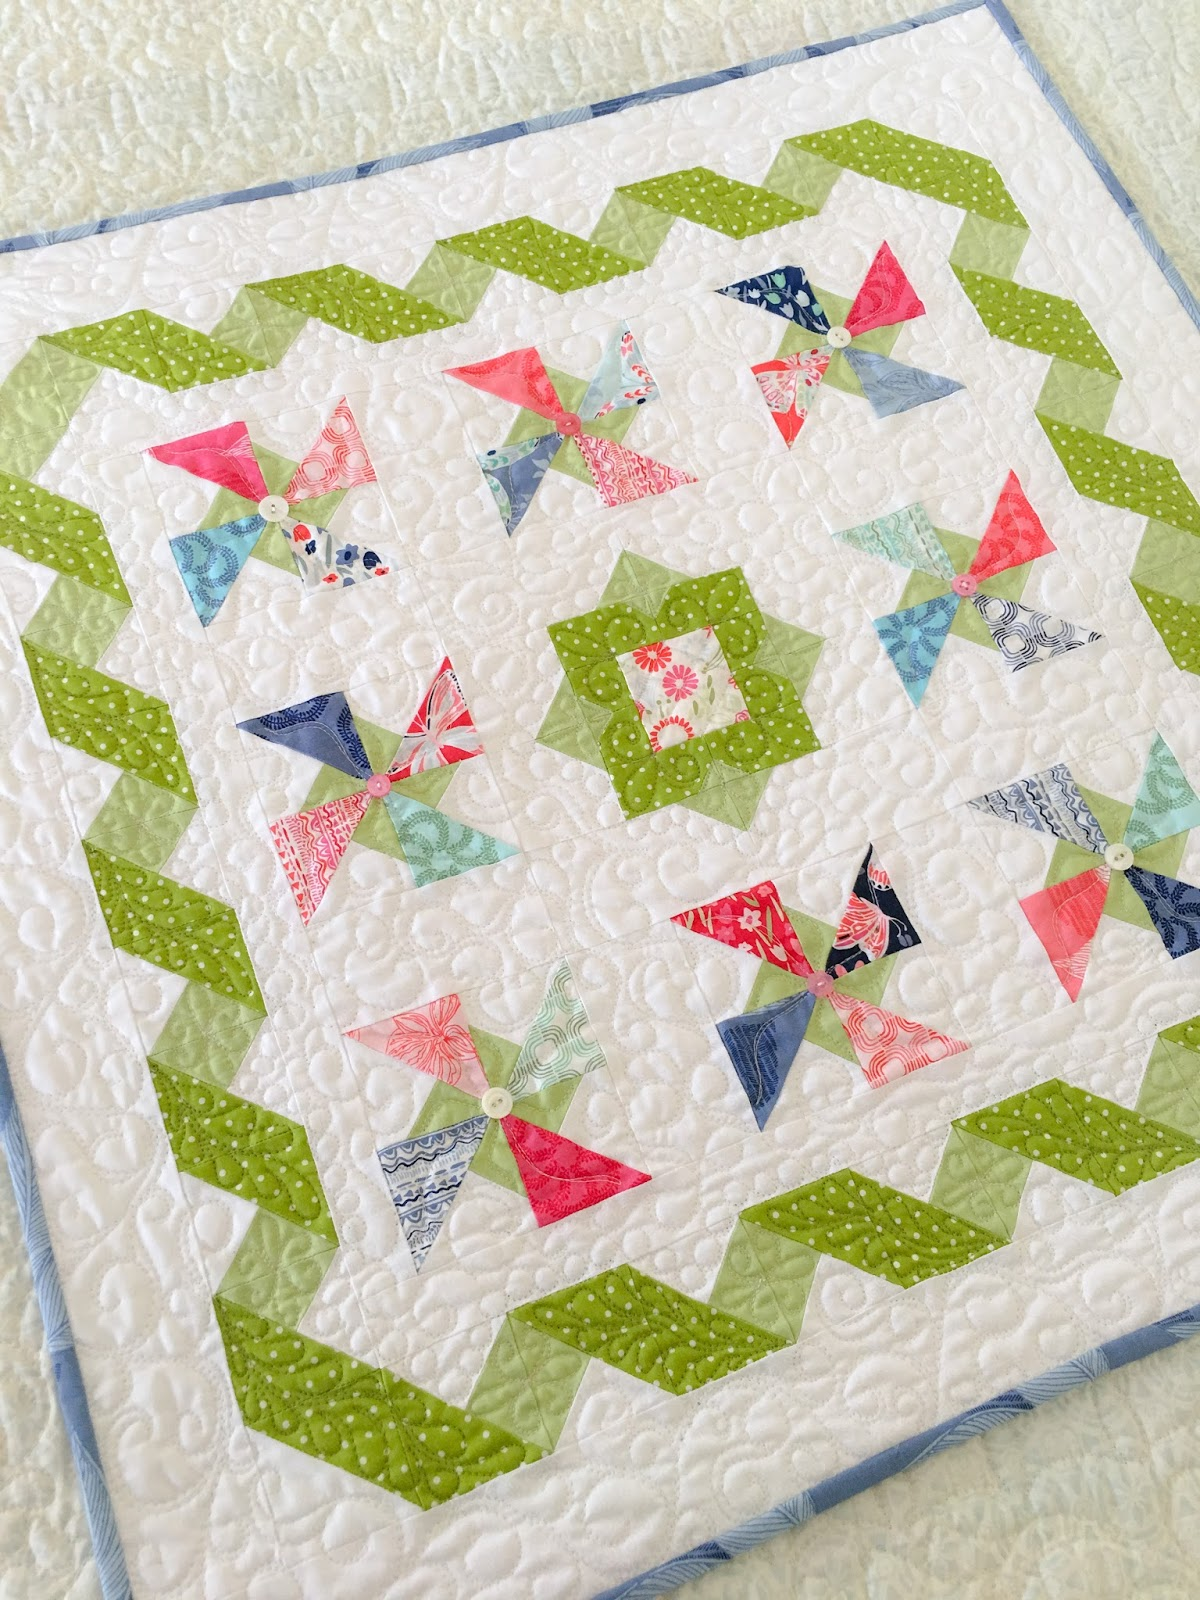 geese kokka to lighthearted by quilt pack up charm article flying free patterns stitch quilting